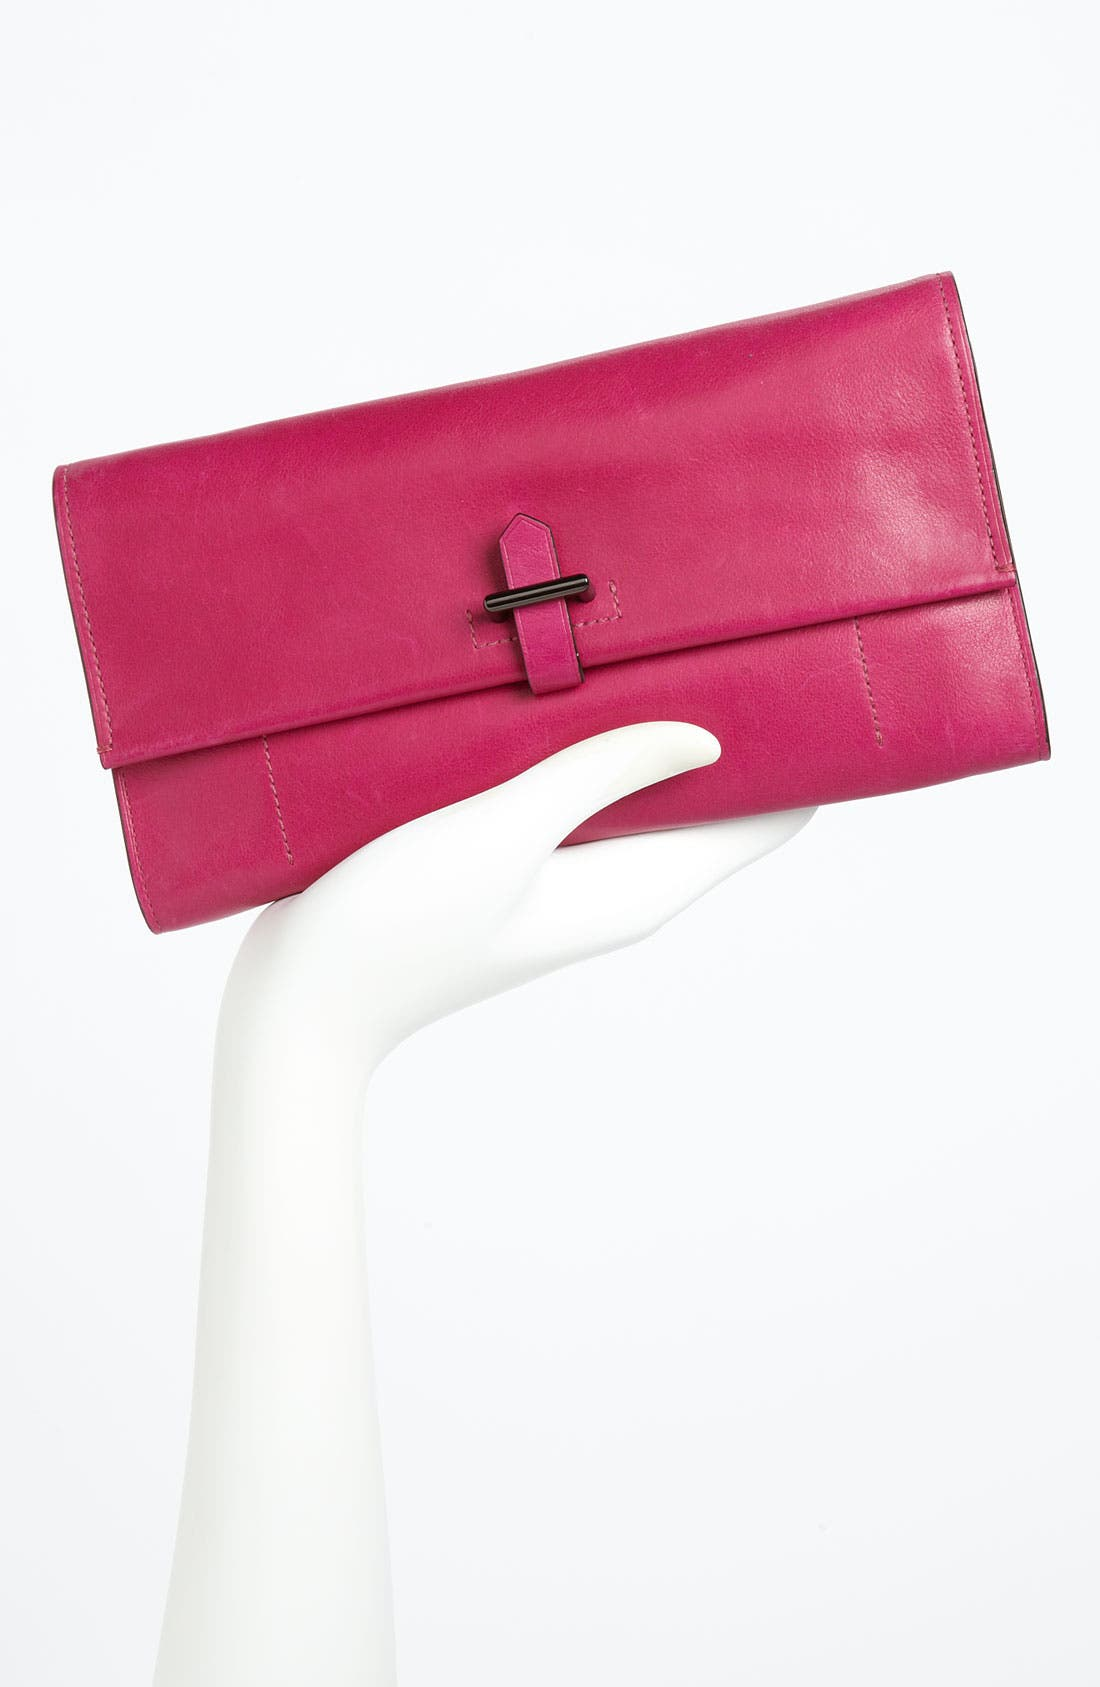 Alternate Image 2  - Reed Krakoff 'Standard' Hasp Clutch